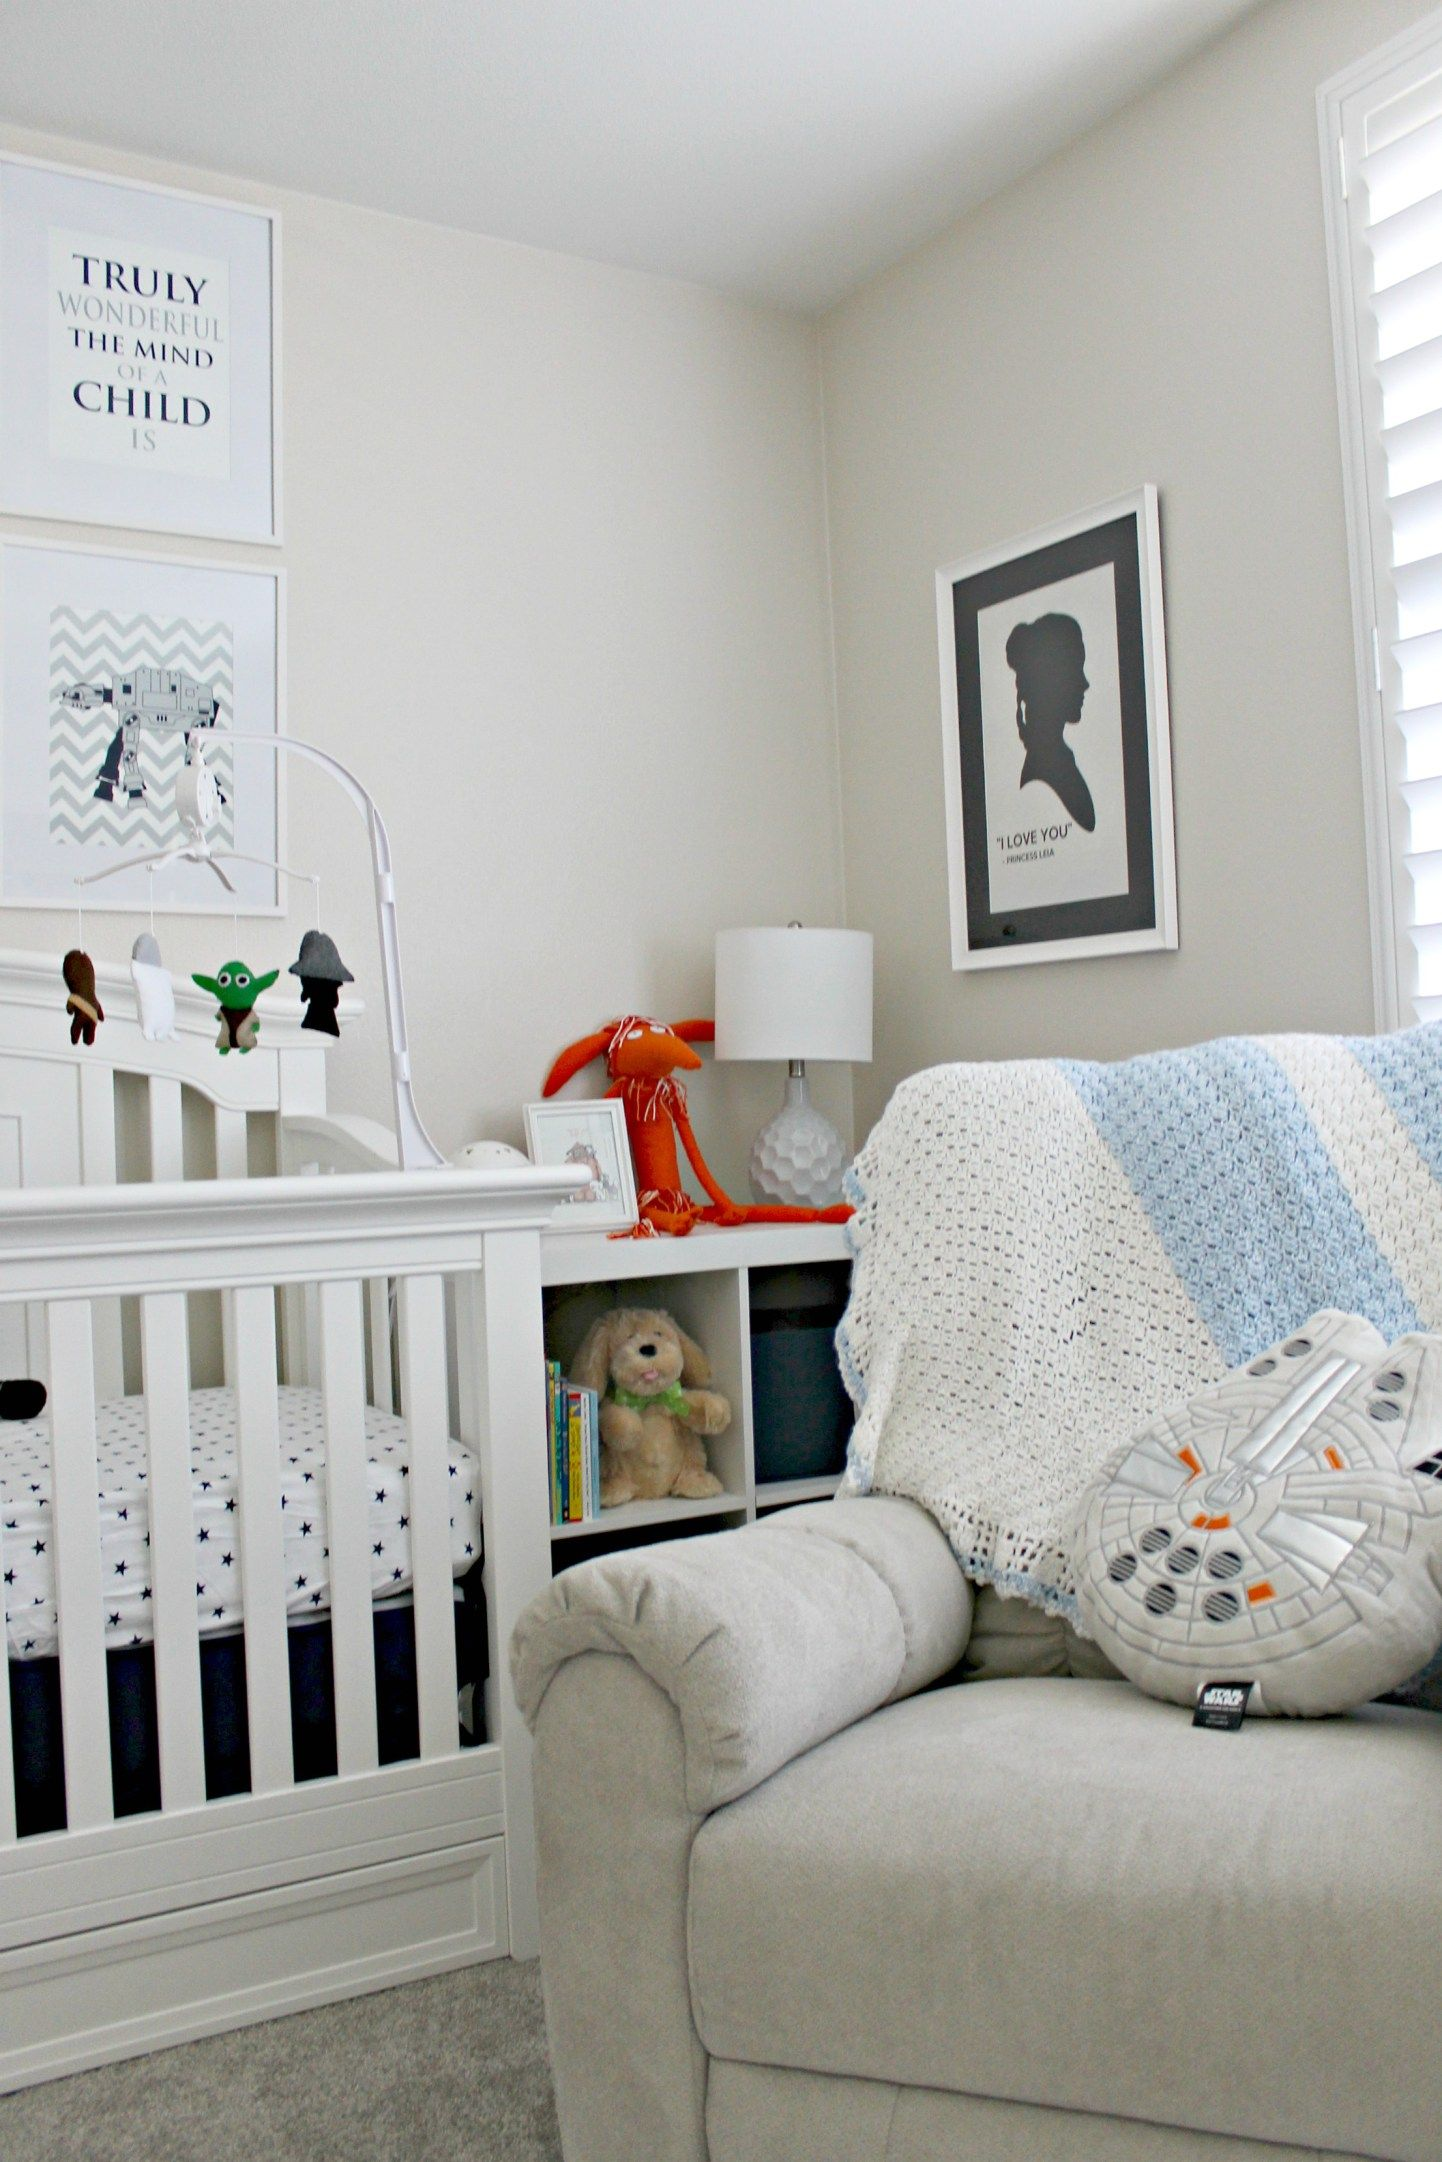 Star Wars Baby Nursery | Star wars baby nursery, Star wars ...